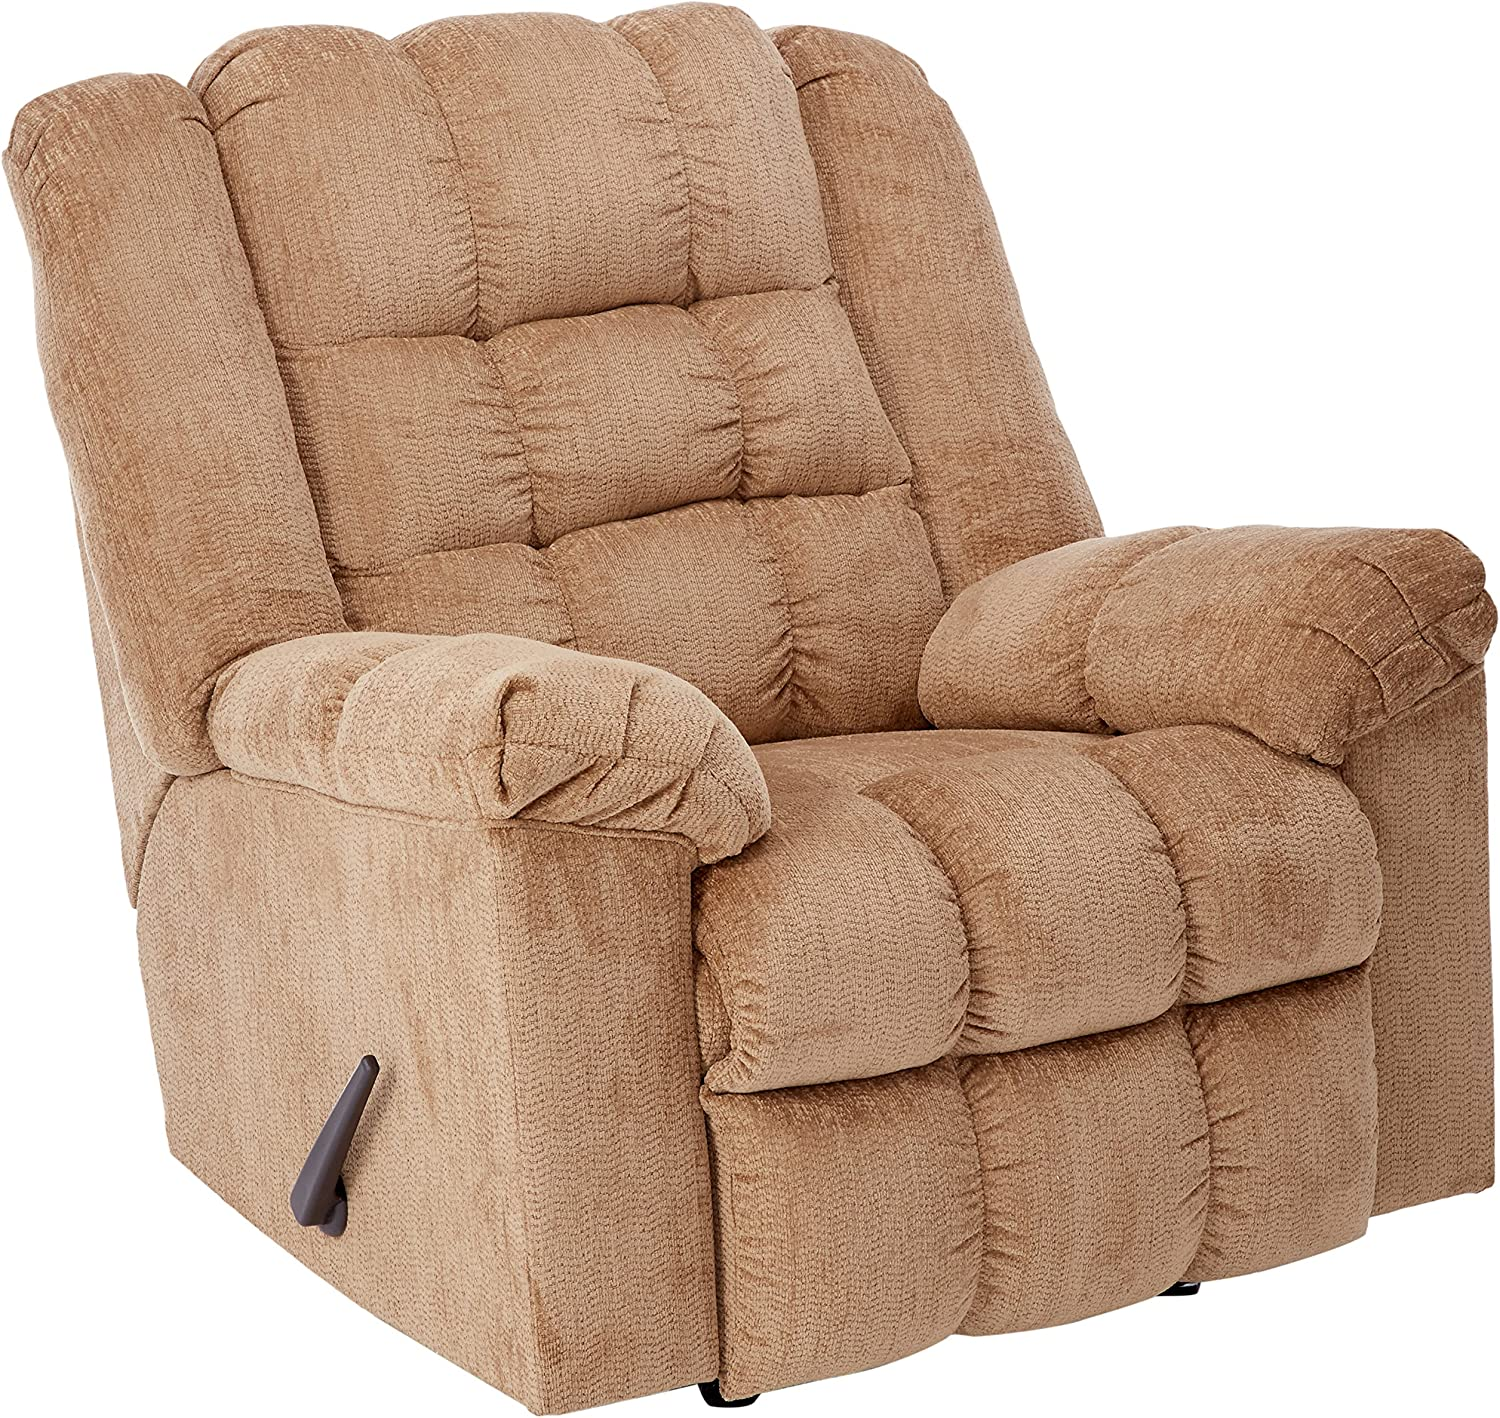 Signature Design by Ashley - Ludden Contemporary Rocker Recliner - One-Pull Reclining - Tan